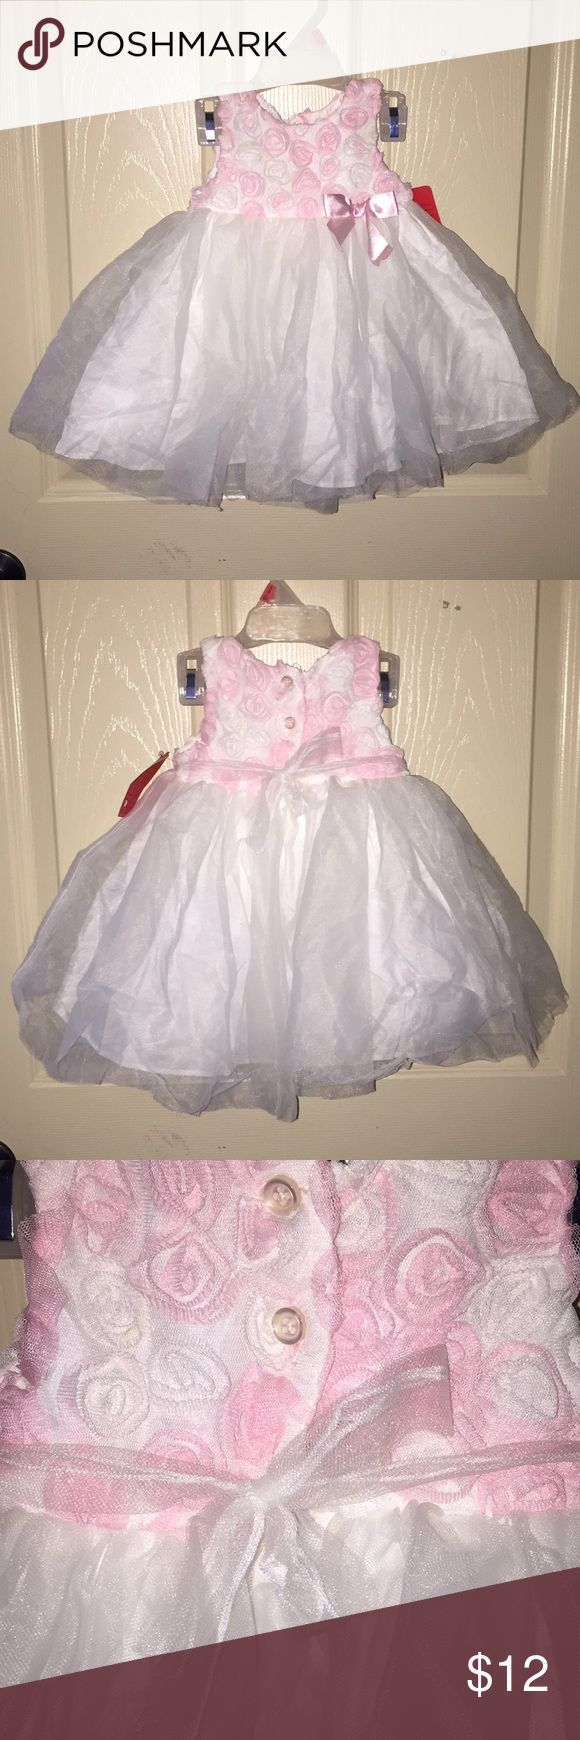 Marmellata 2 pc Dress Super cute for Easter or a wedding or any other occasion.  Cute white and pink roses with a pink bow.  Skirt has tulle.  Matching bloomers.  Bought at consignment store.  Never worn.  Price firm. Marmellata Dresses Formal